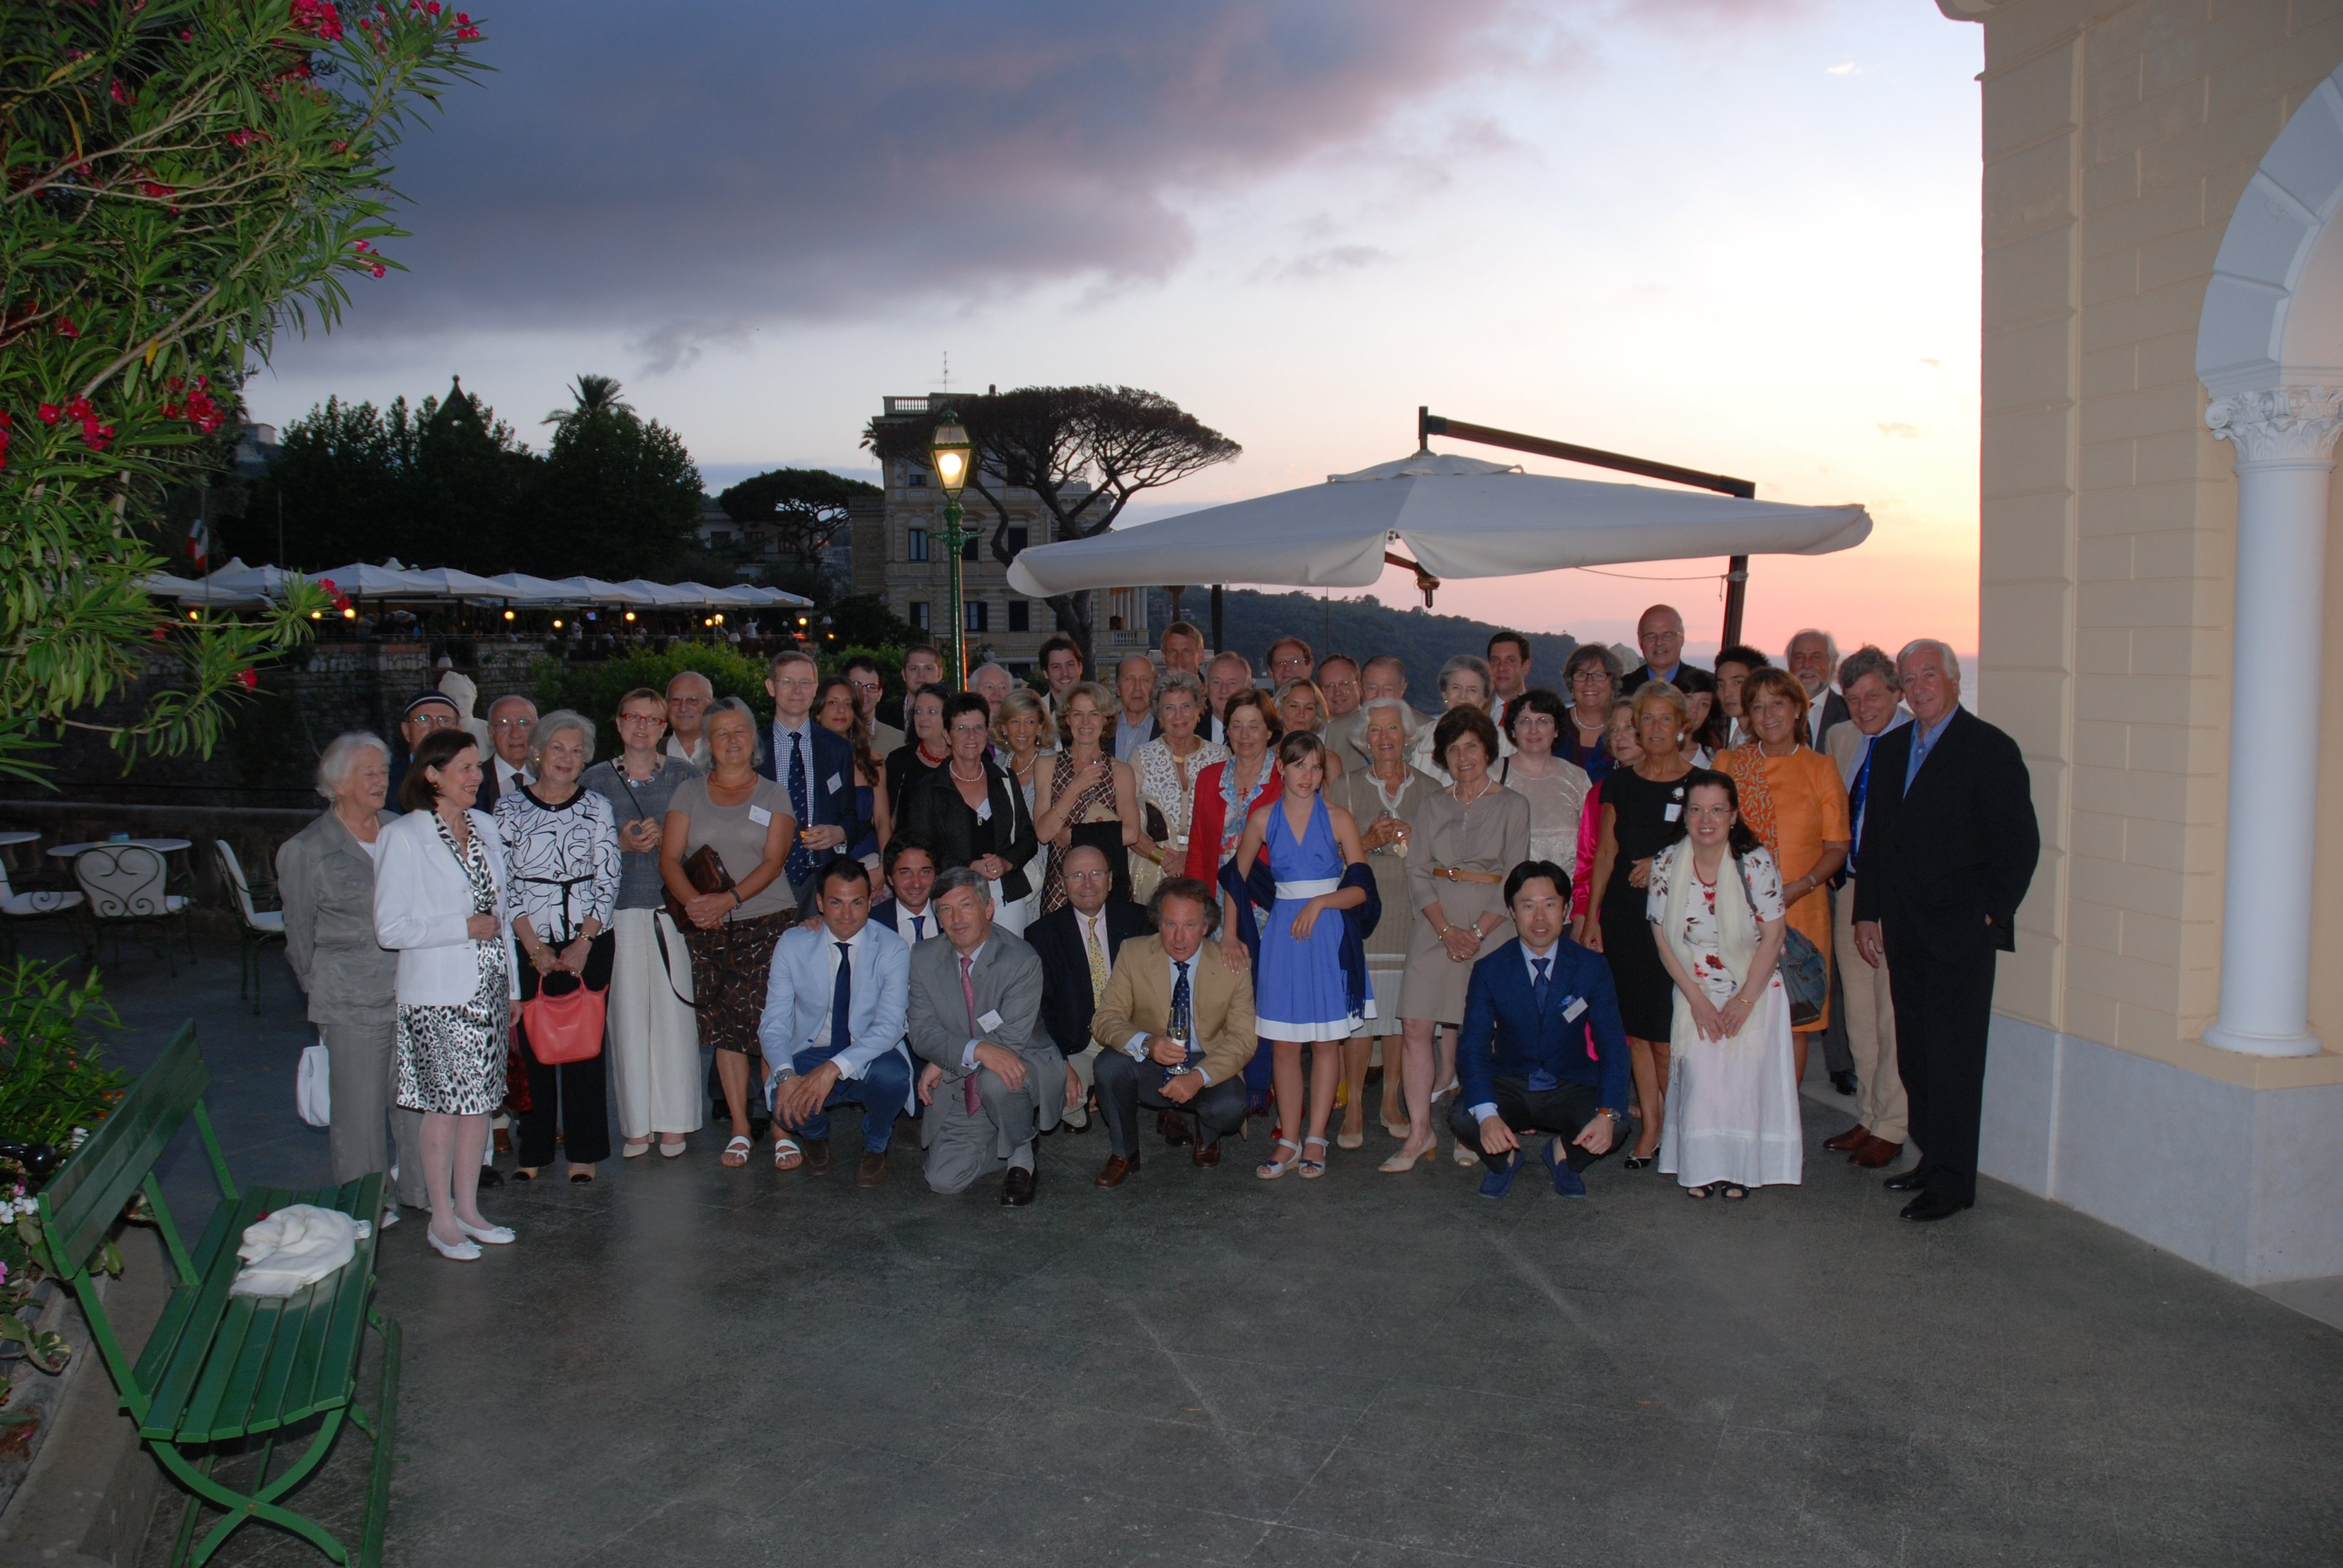 2010 Annual General Meeting in Sorrento